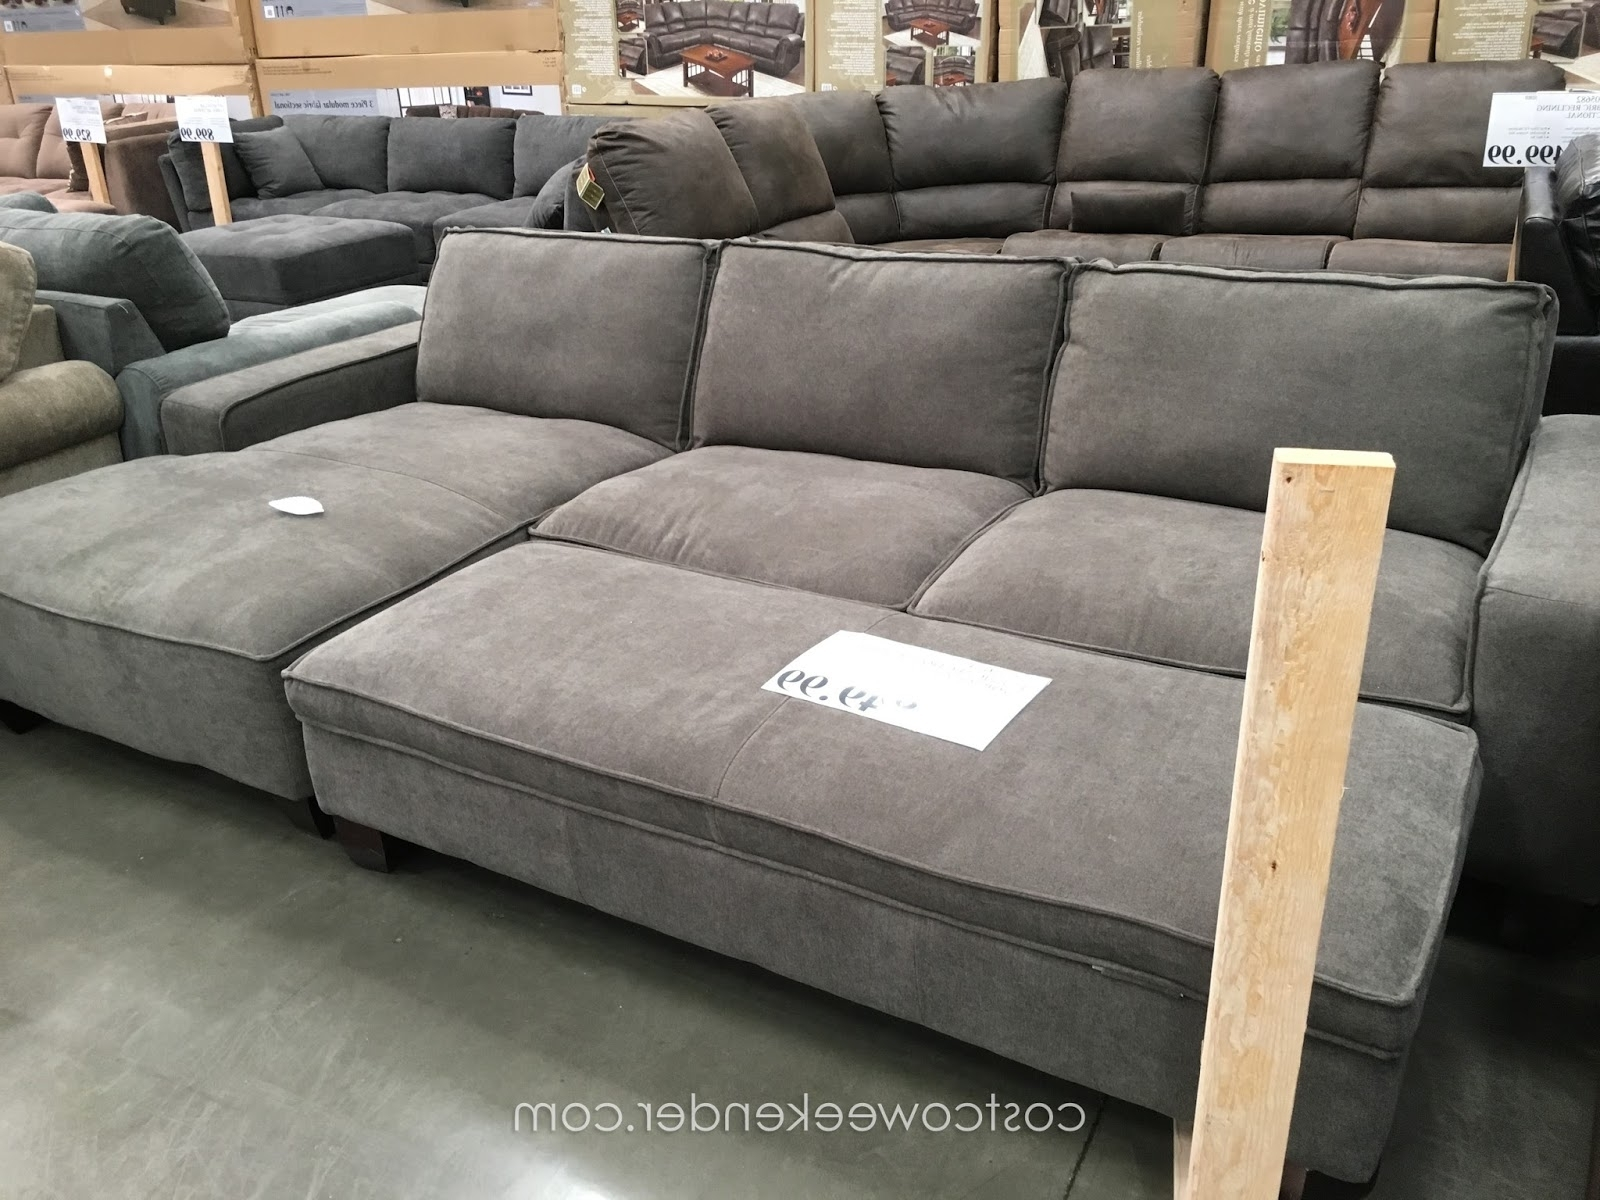 Grey Sectional Sofas With Chaise With Most Popular Sectional Sofa Design: Sectional Sofa With Chaise And Ottoman (View 14 of 15)